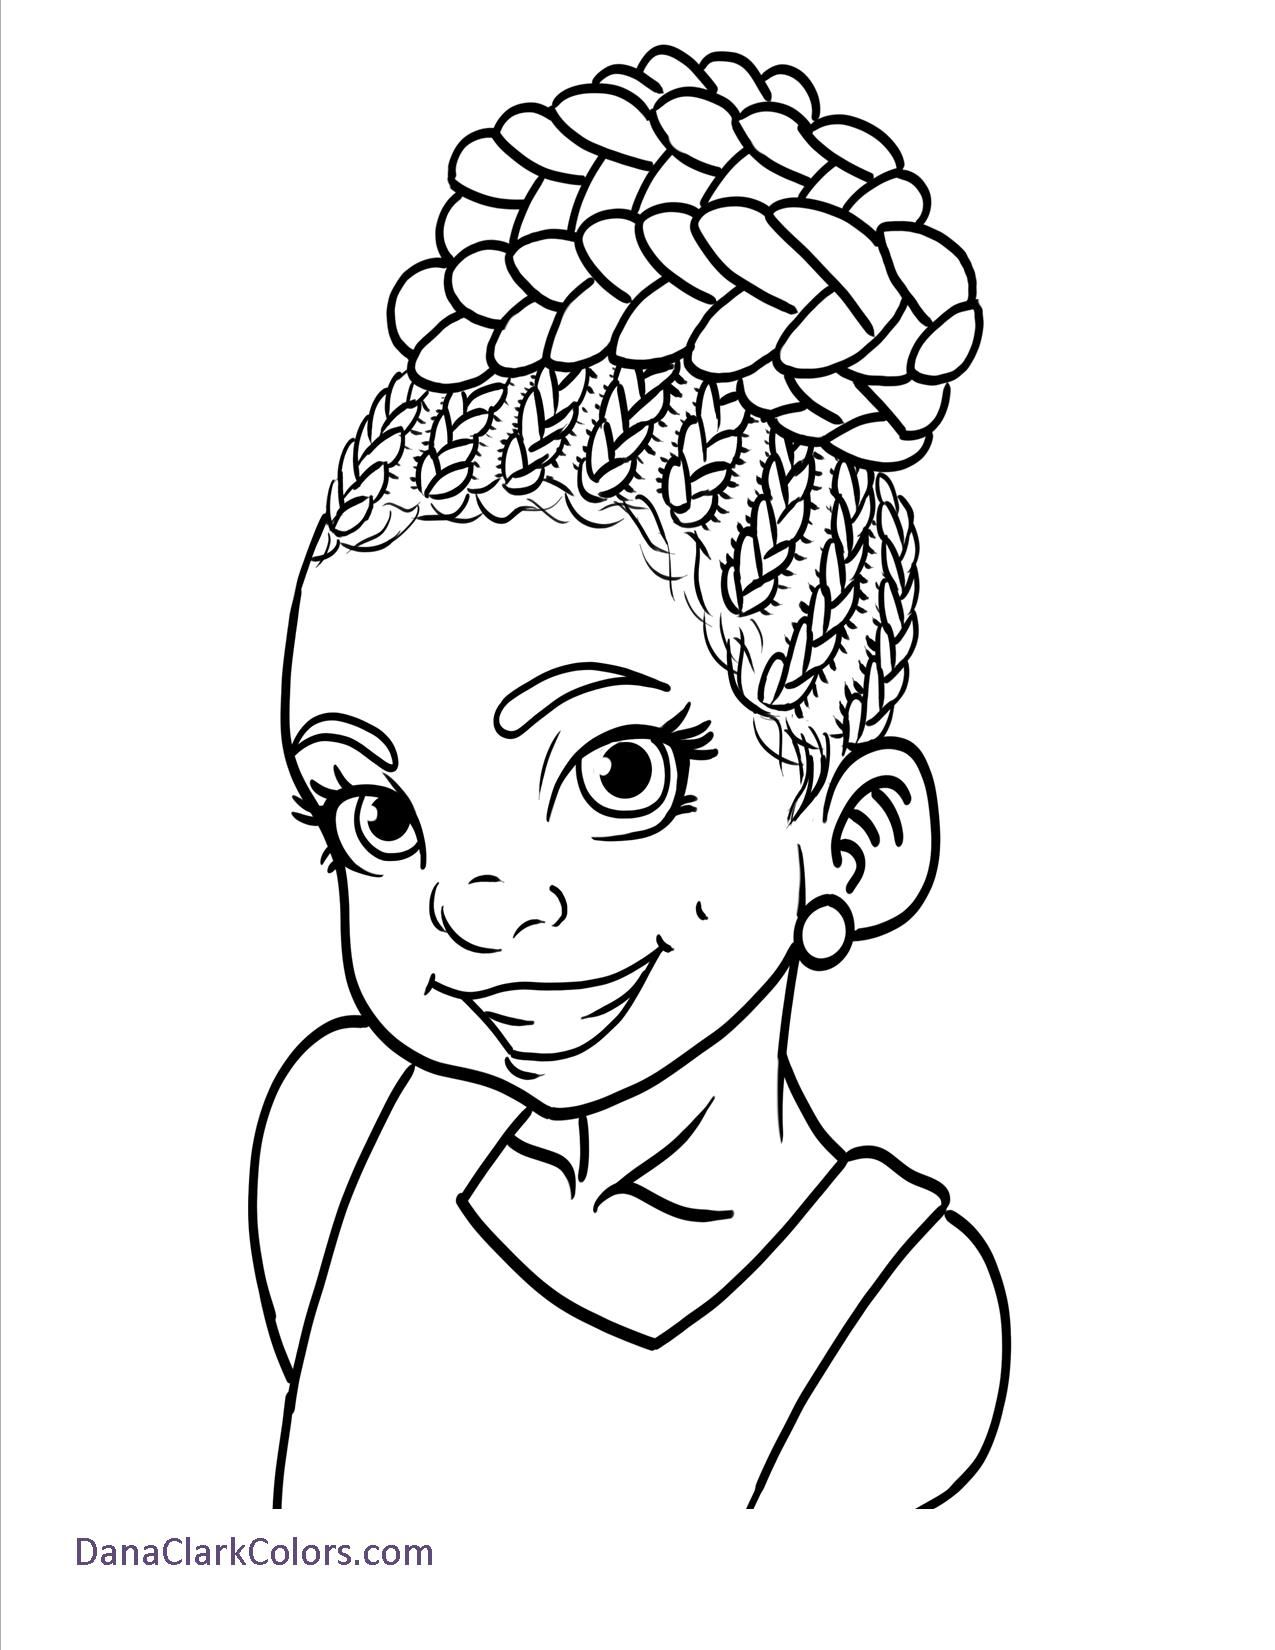 Online childrens coloring pages - Black Kids Coloring Page Africanamericancoloringpages